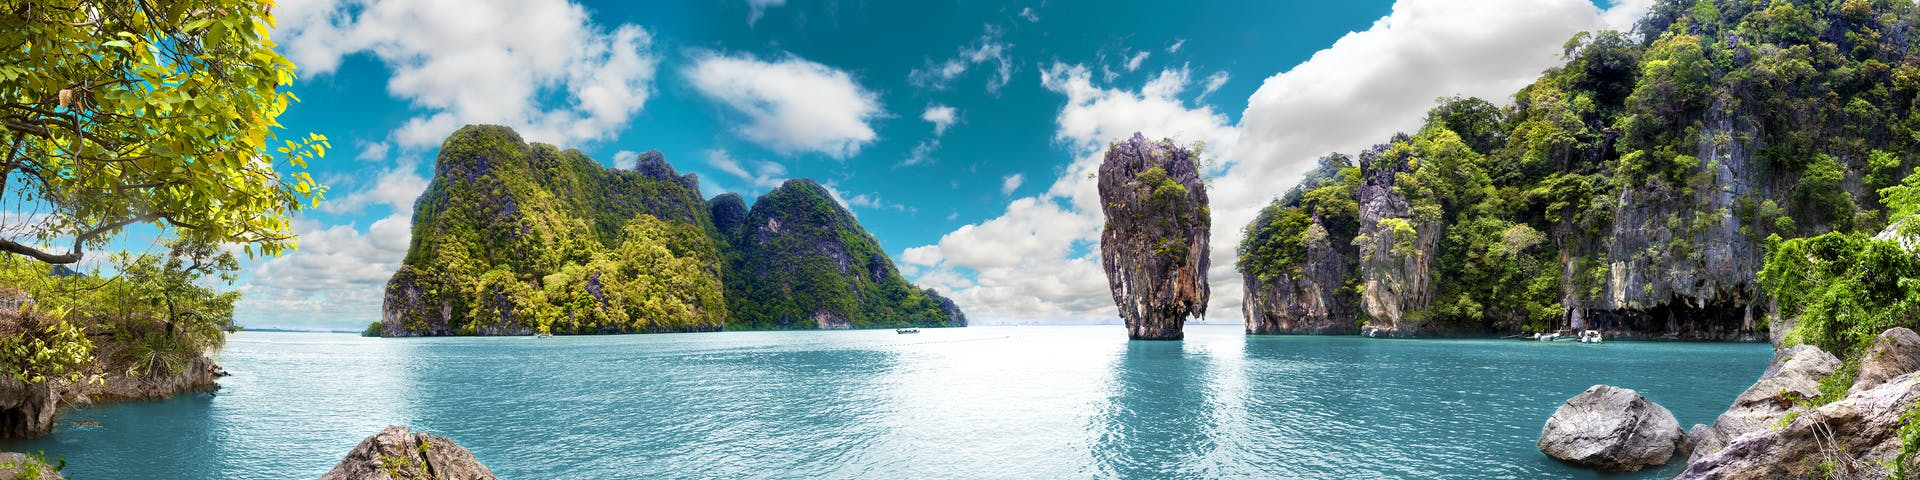 Beautiful scenery of the tropical sea and islands in Phuket Thailand